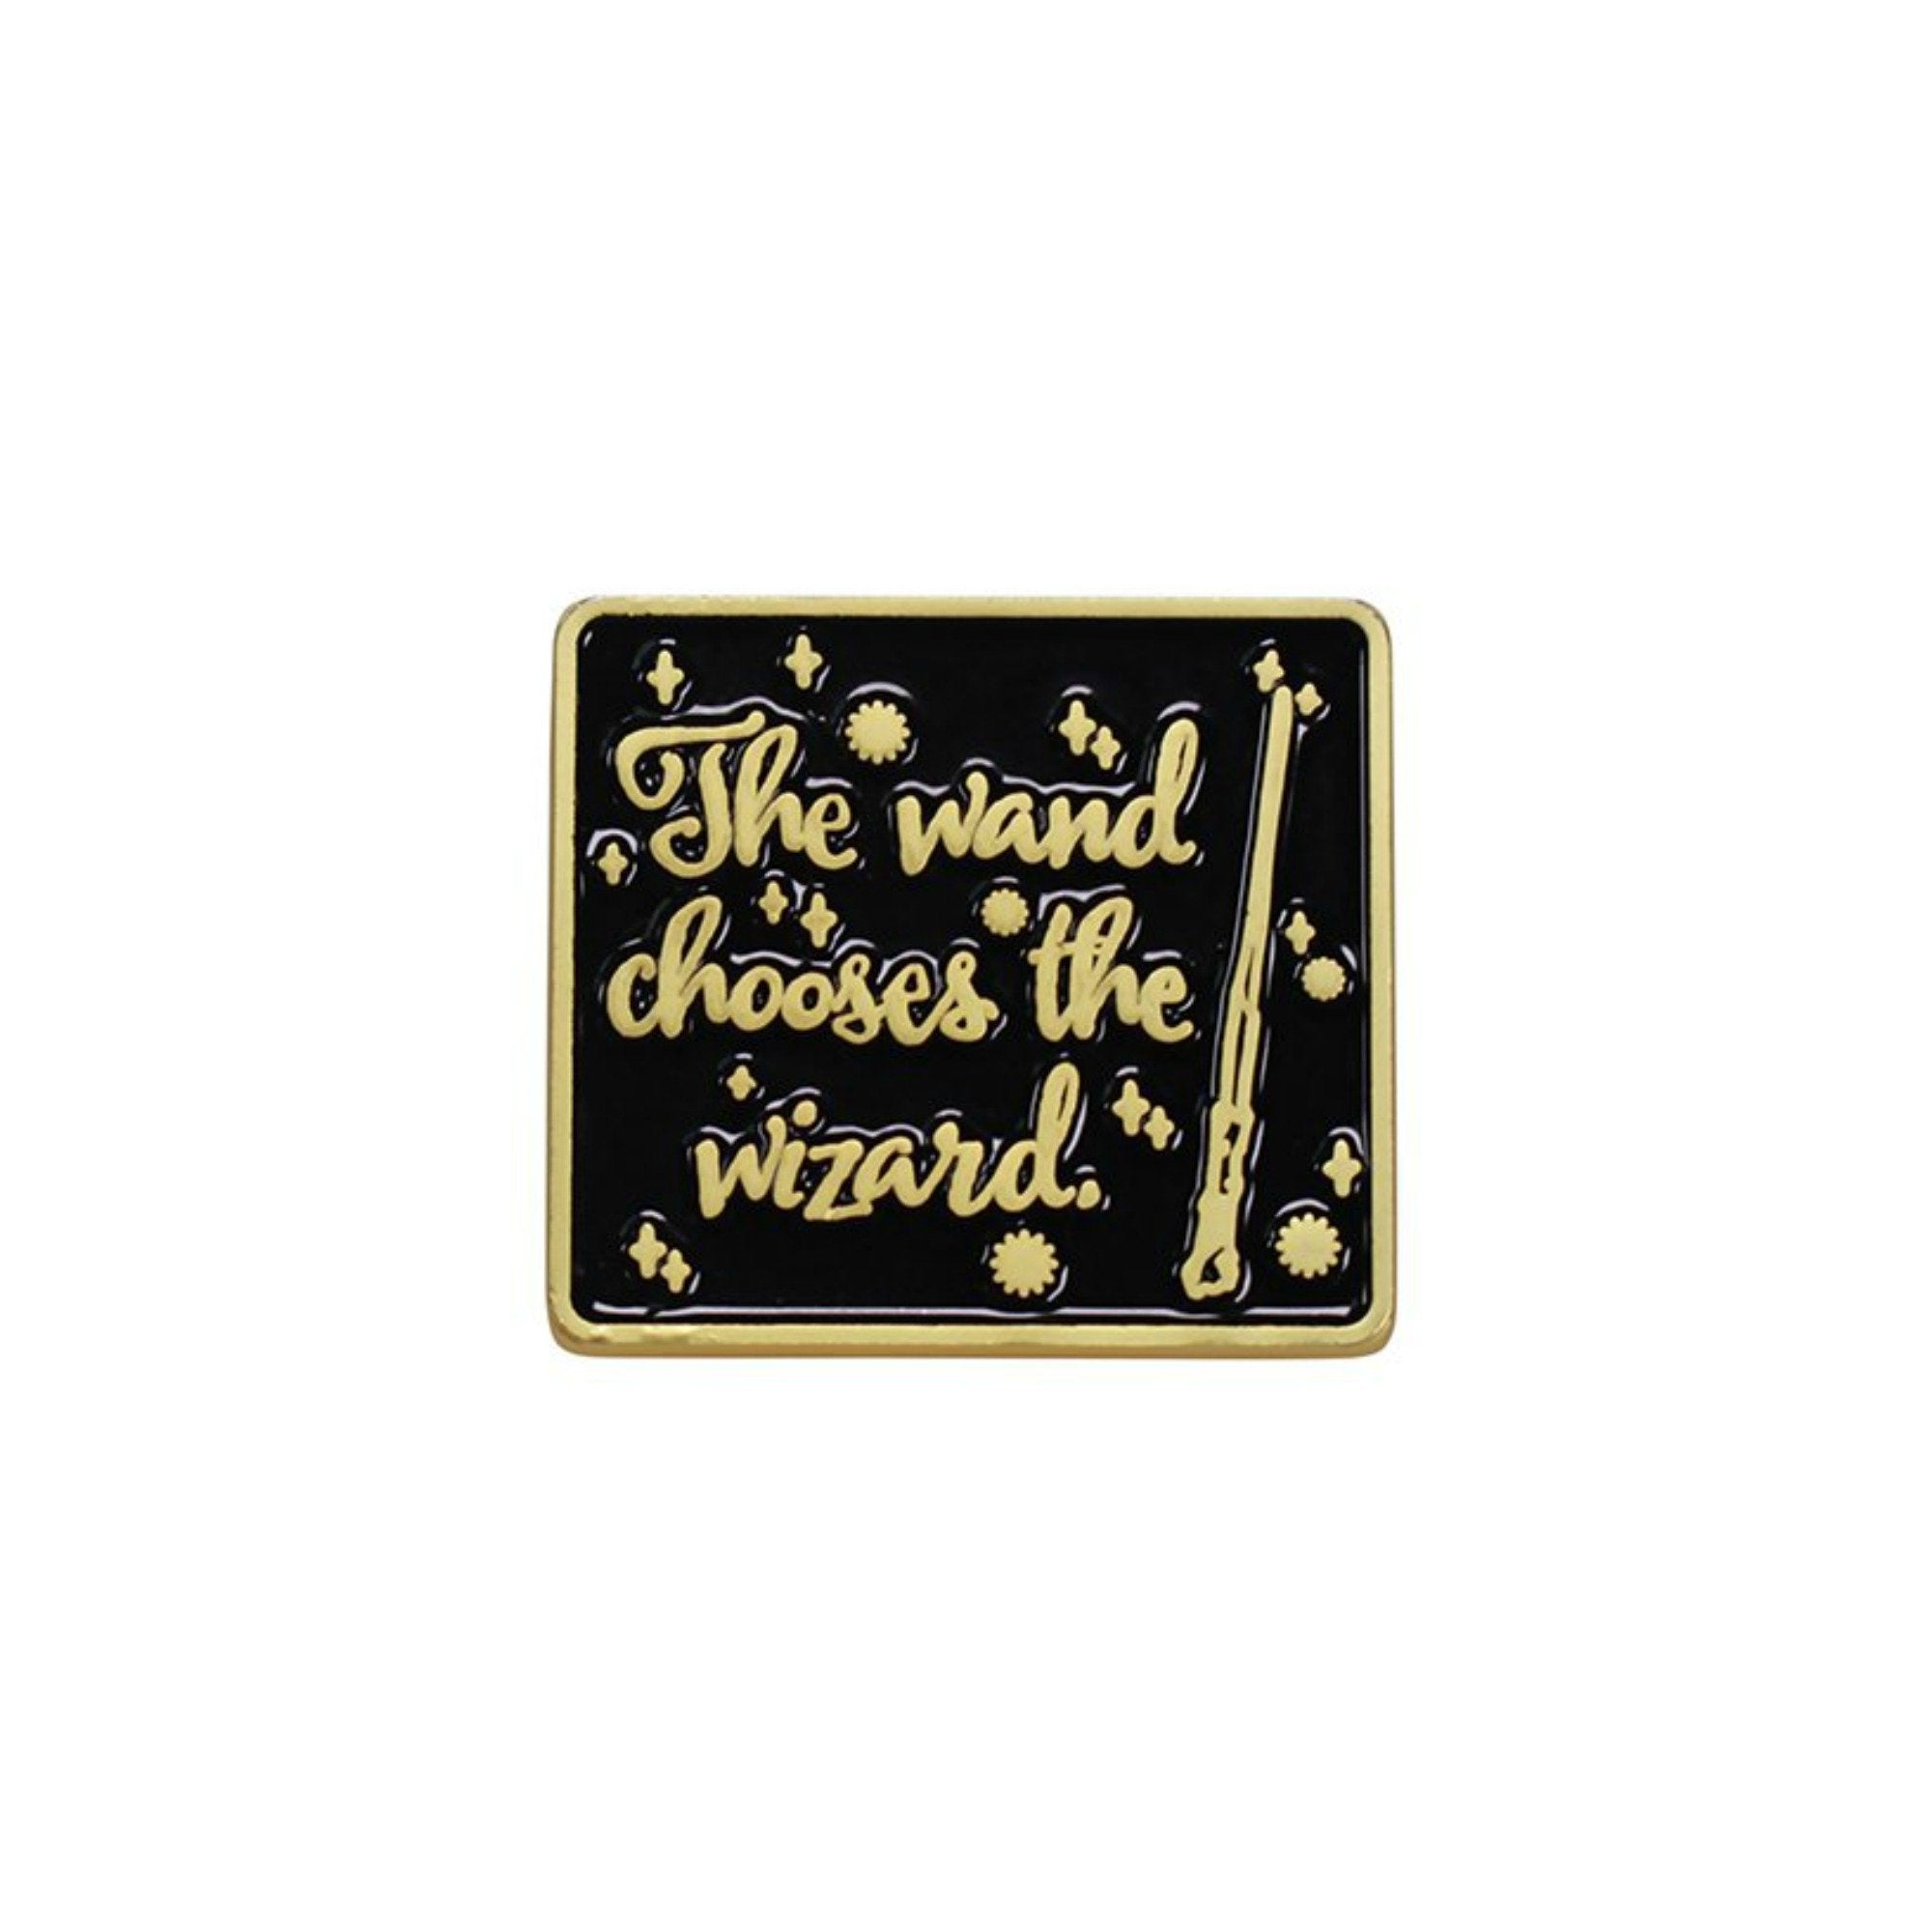 Harry Potter The Wand Chooses The Wizard Lapel Pin Badge - Minimum Mouse